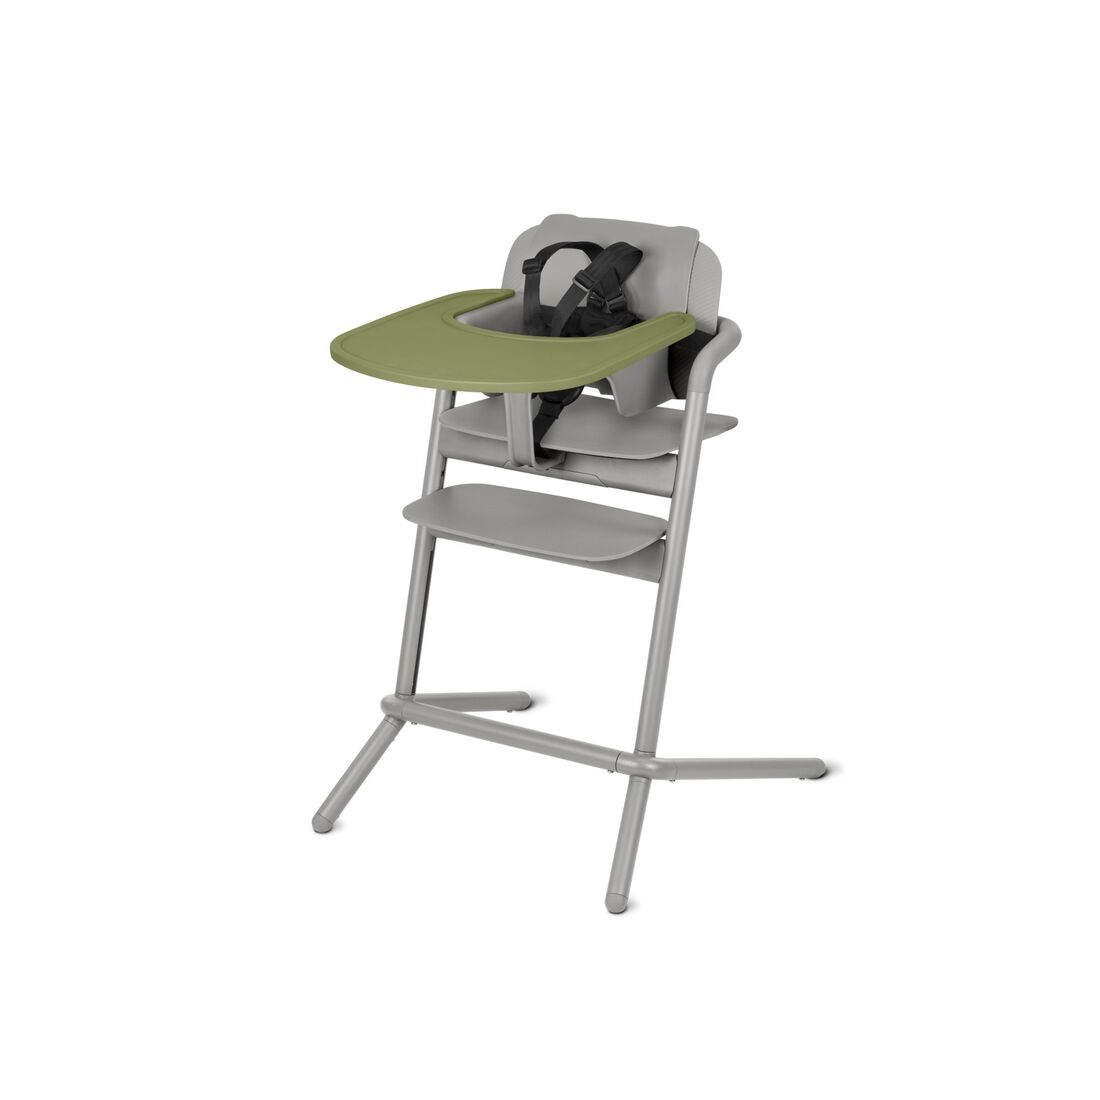 CYBEX Lemo Tray - Outback Green in Outback Green large